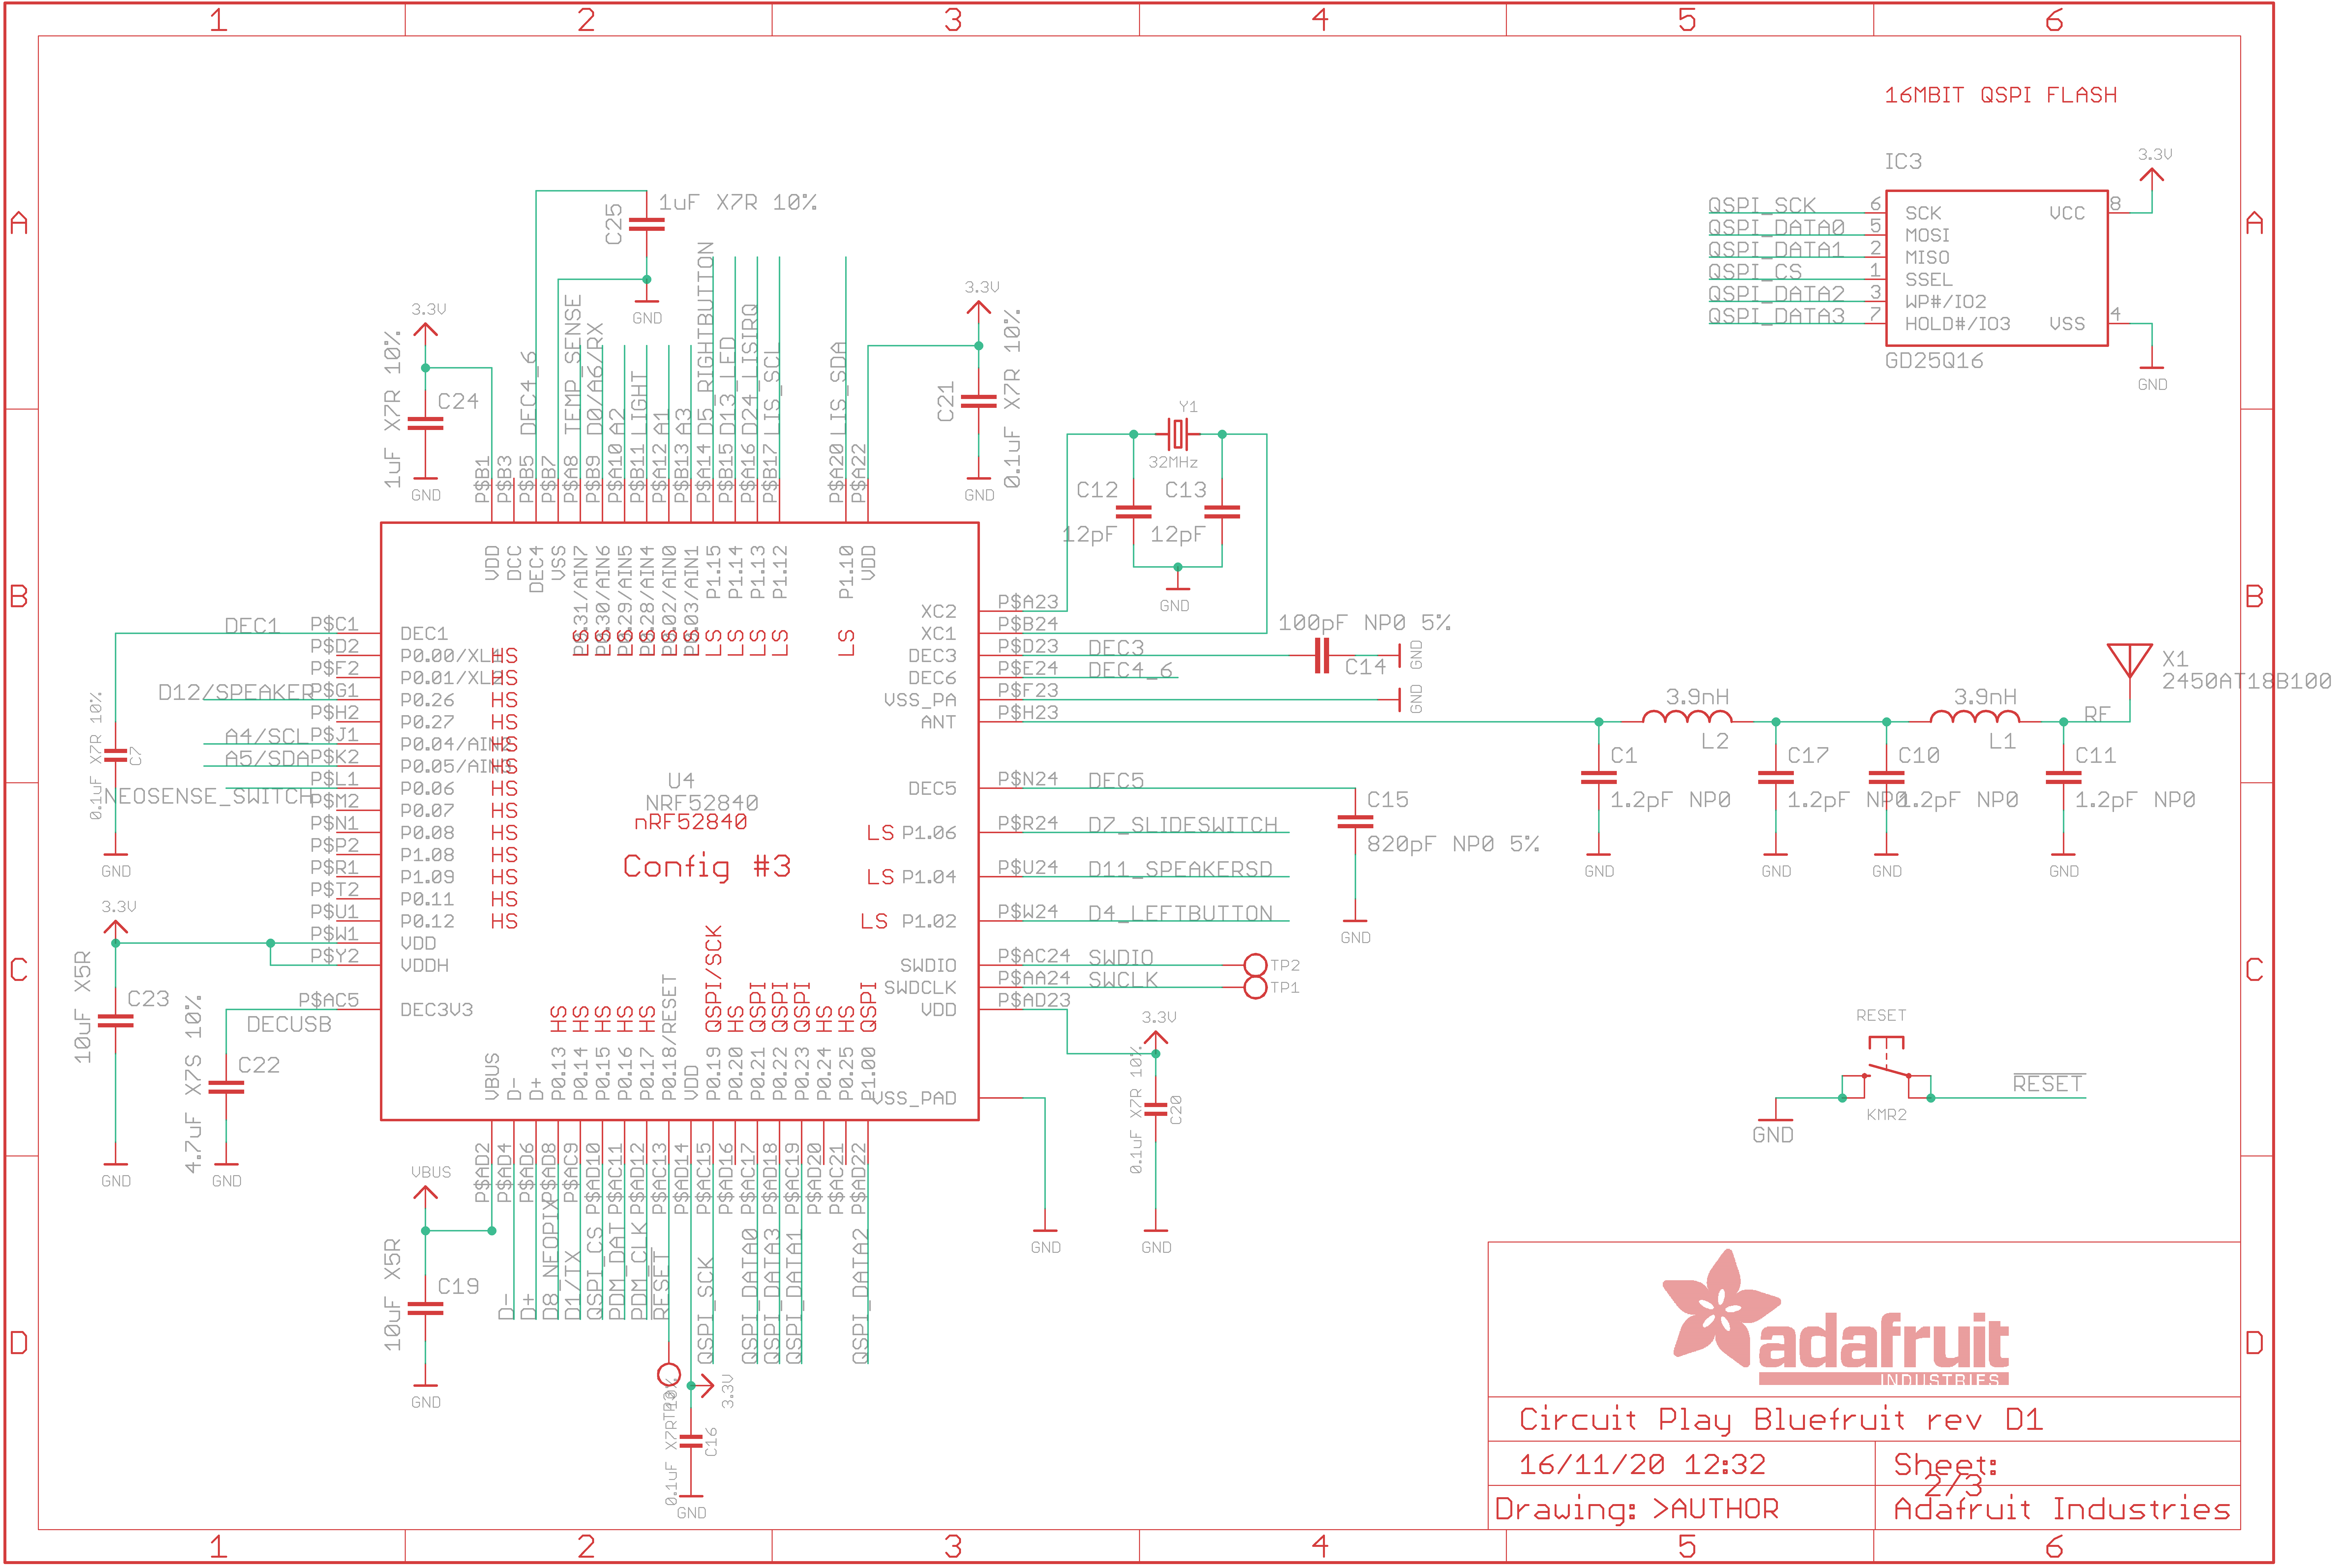 adafruit_products_CPB_sch_2.png